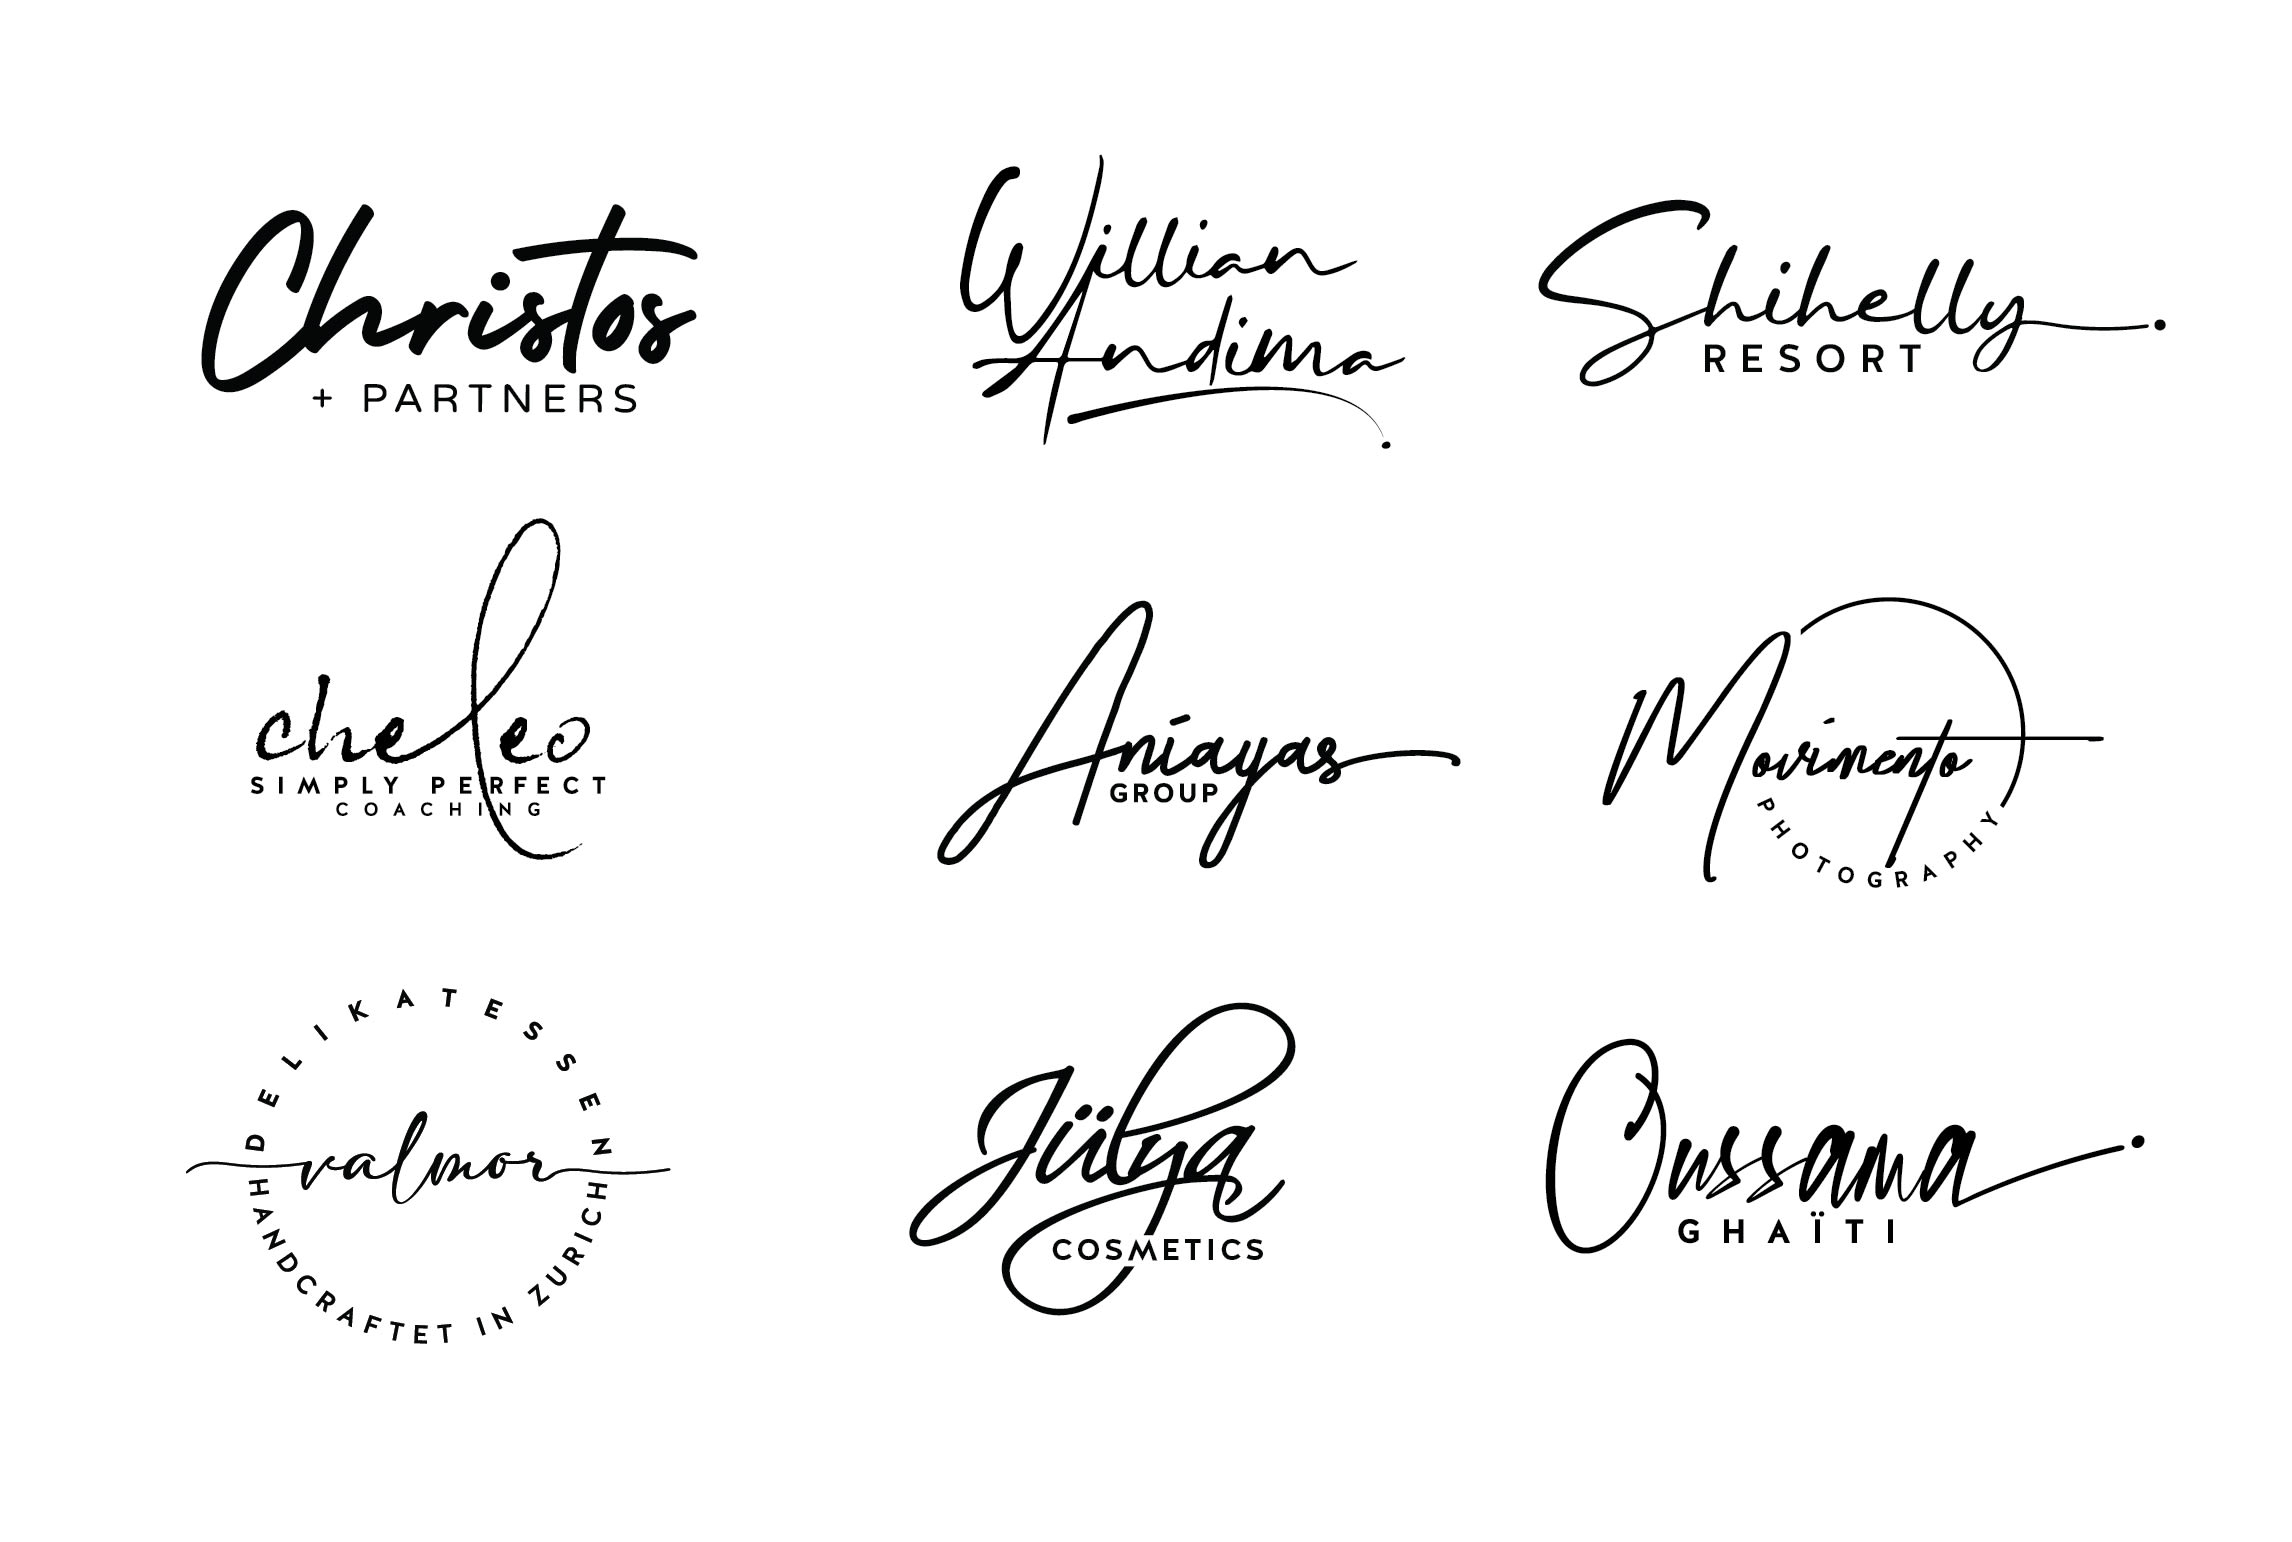 I will design 3 creative signature handwritten logo